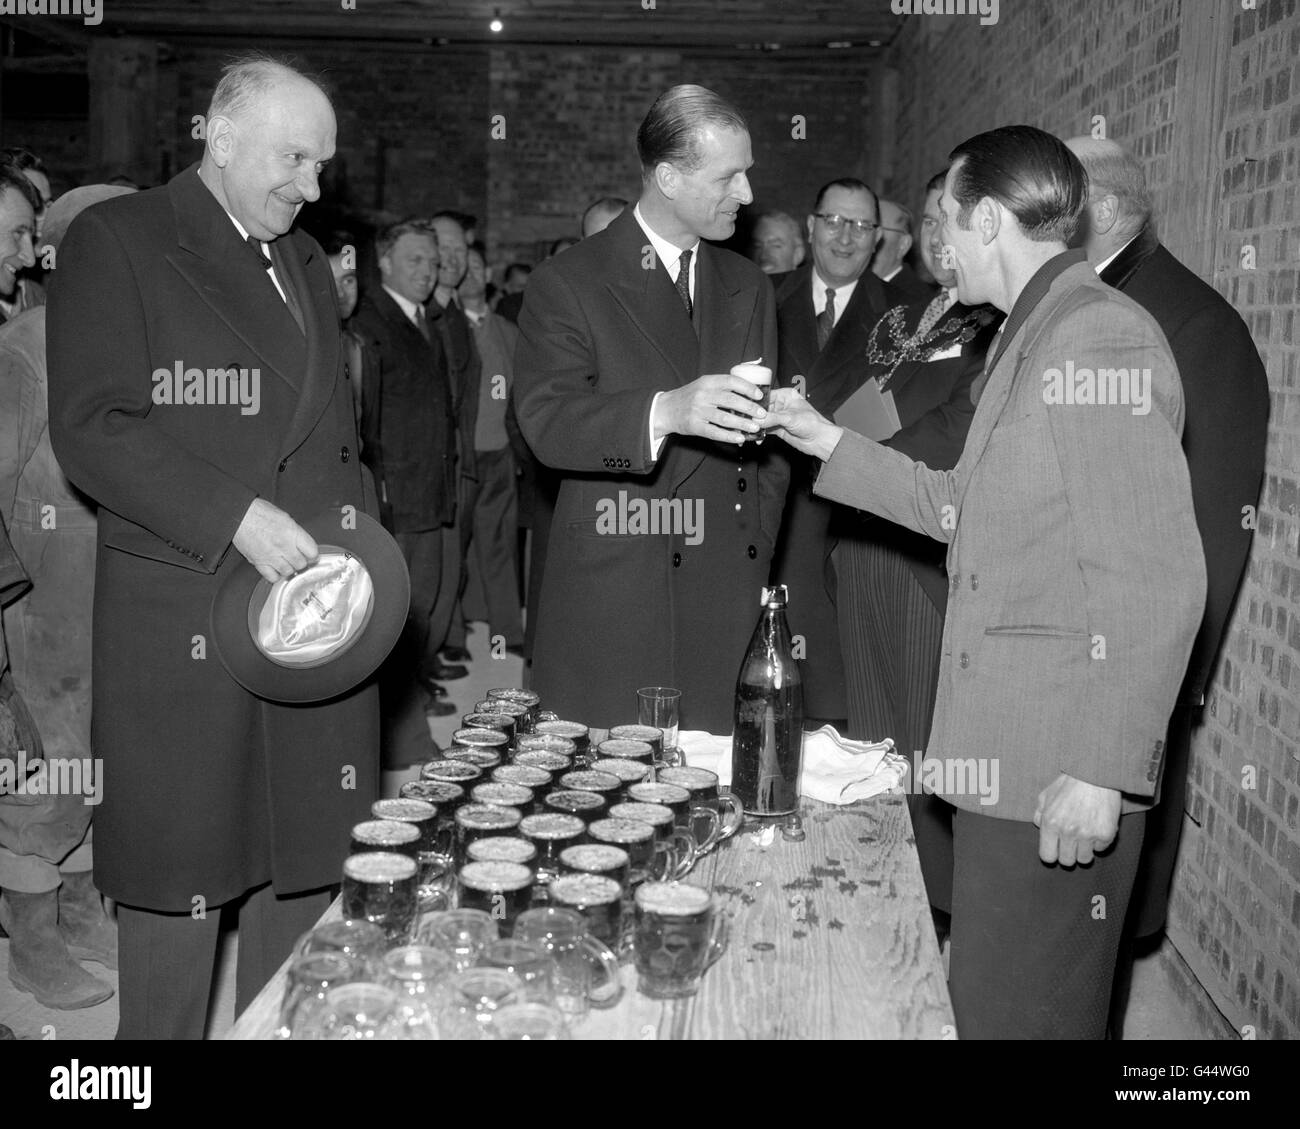 Royalty - The Duke of Edinburgh Laying a Foundation Stone - Portland Place, London - Stock Image